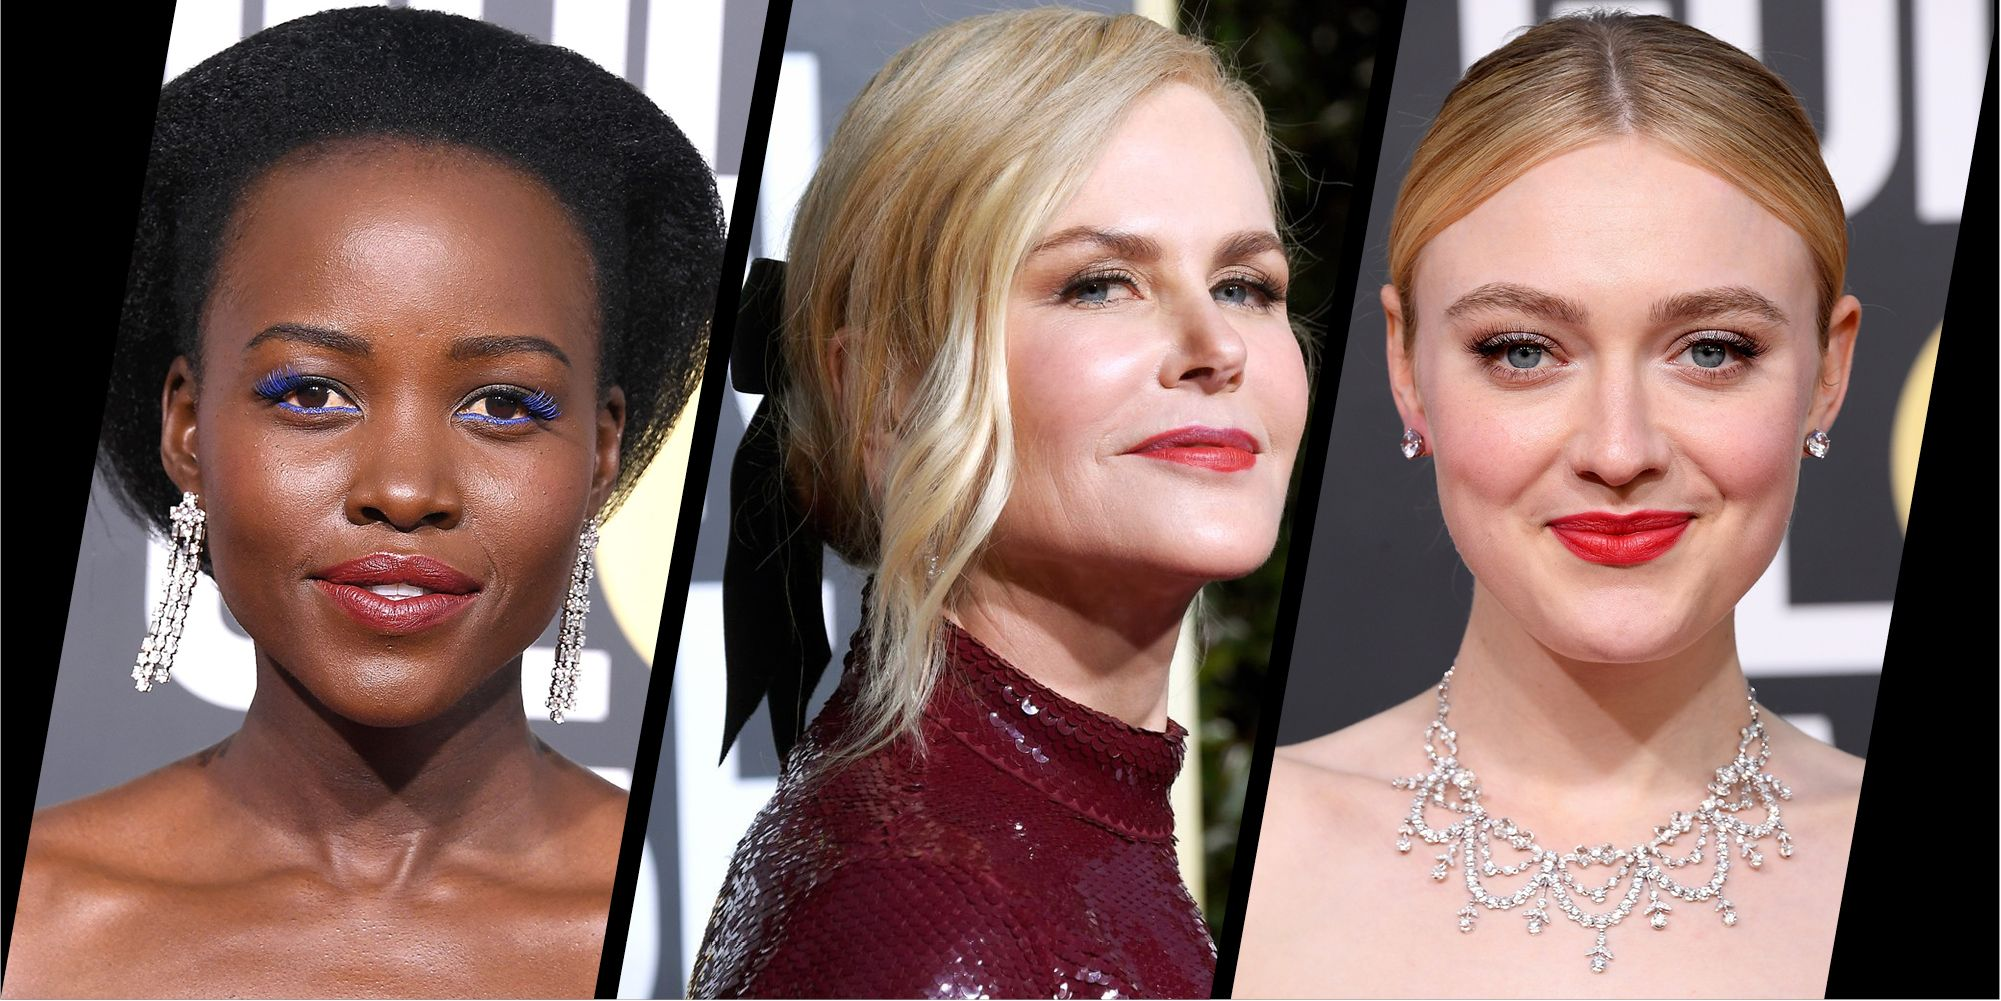 15 stunning beauty looks from the Golden Globes 2019